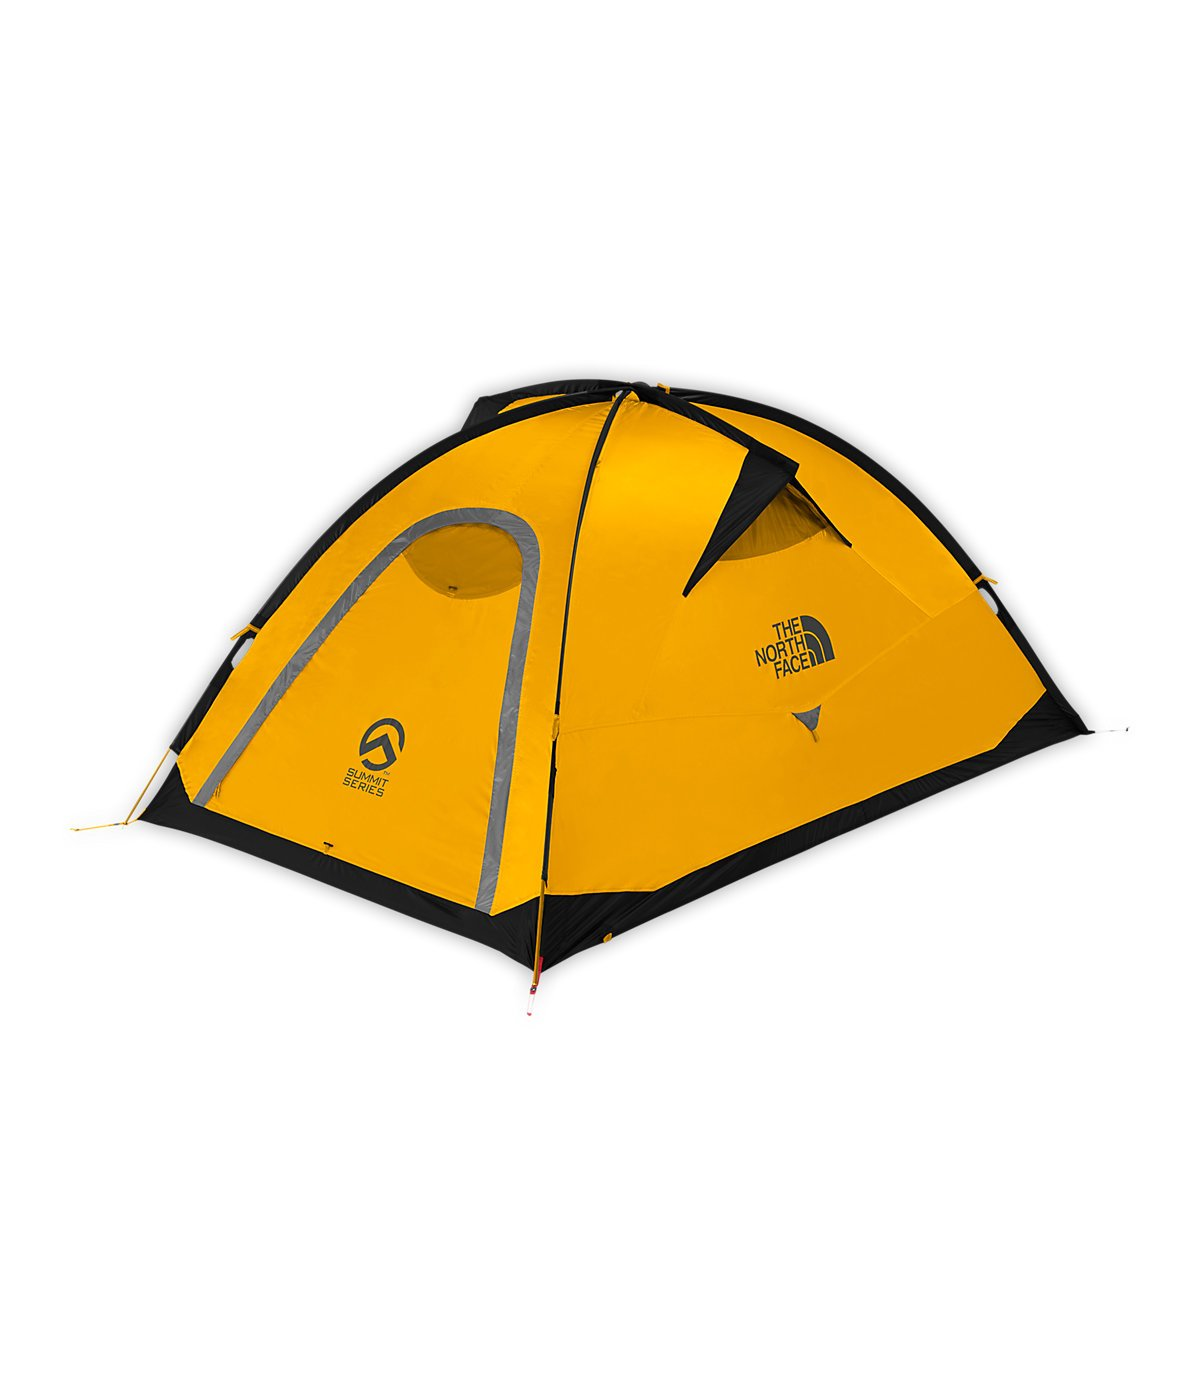 The North Face Erwachsene Accessoires für Zelte Assault 3, Summit Gold/Asphalt Grey, One size, 0888654619300